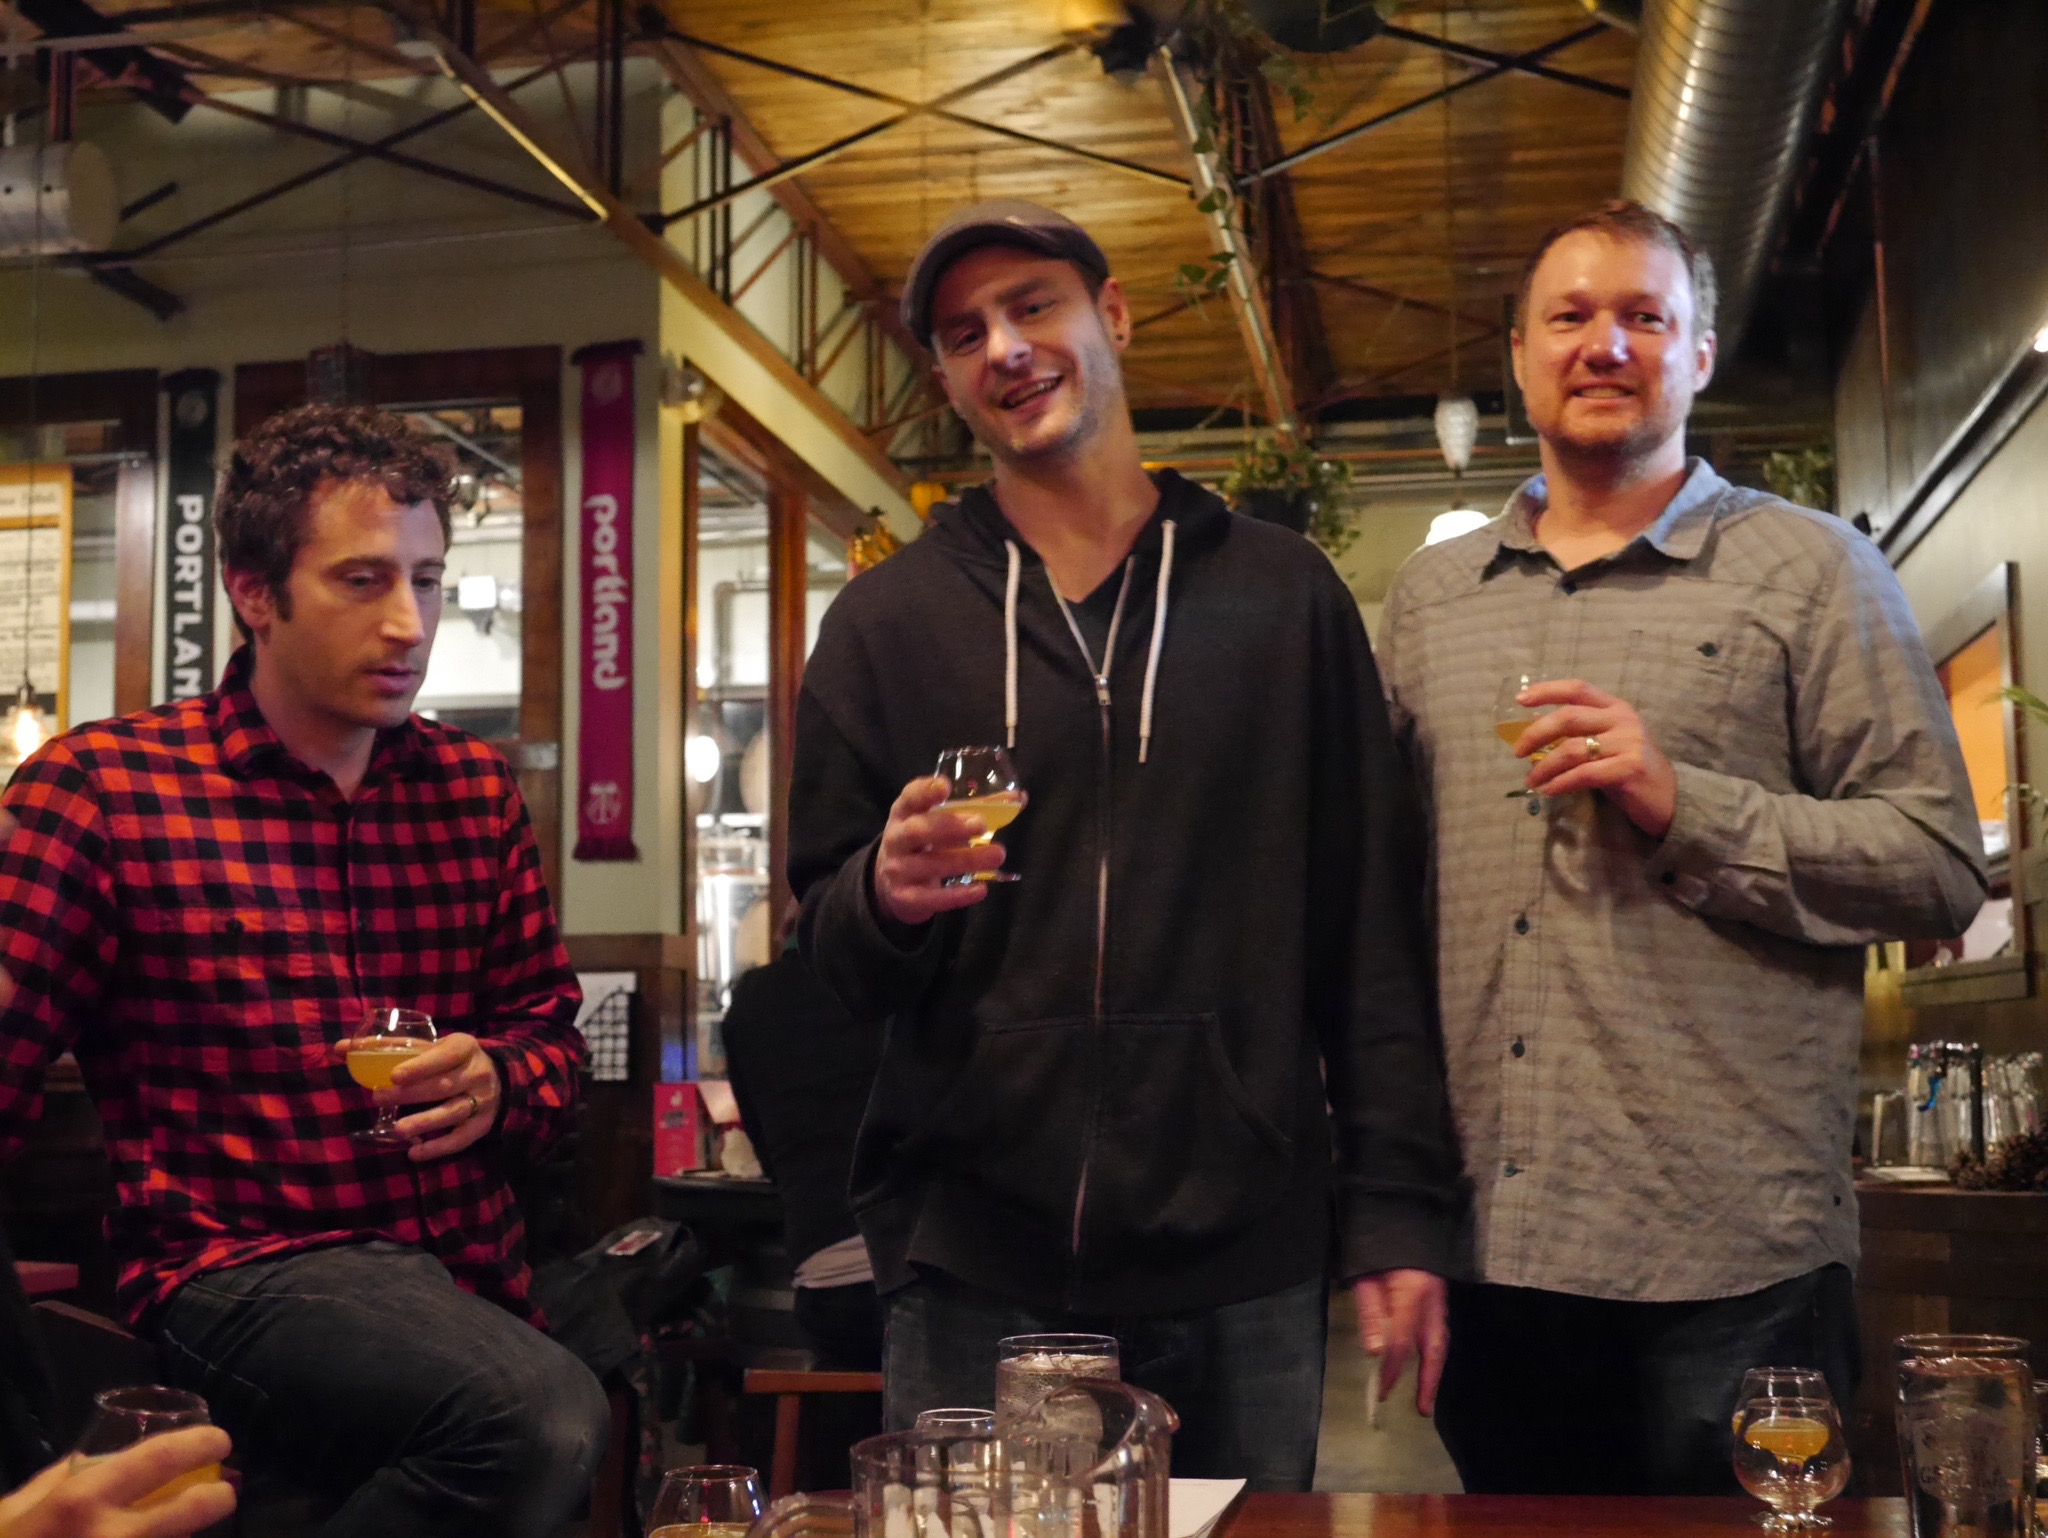 Paul Reiter, James Dugan and Andy Miller of Great Notion Brewing. (photo by Cat Stelzer)